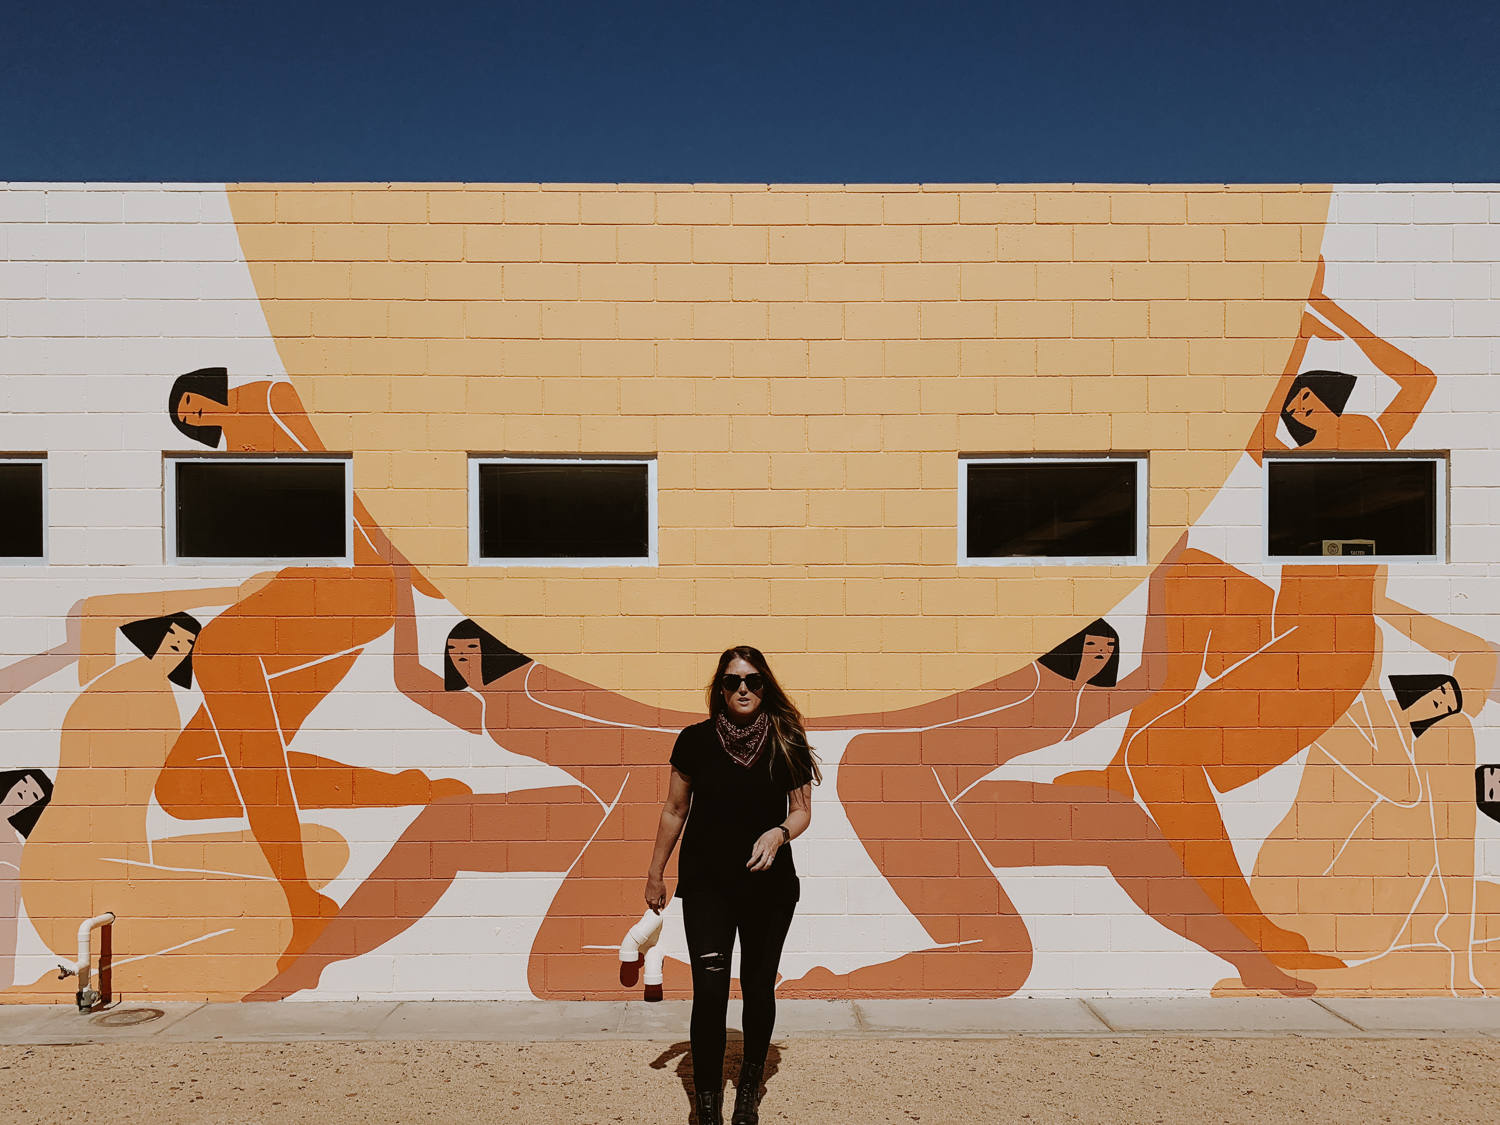 ace_hotel_palm_springs_mural_orange.jpg